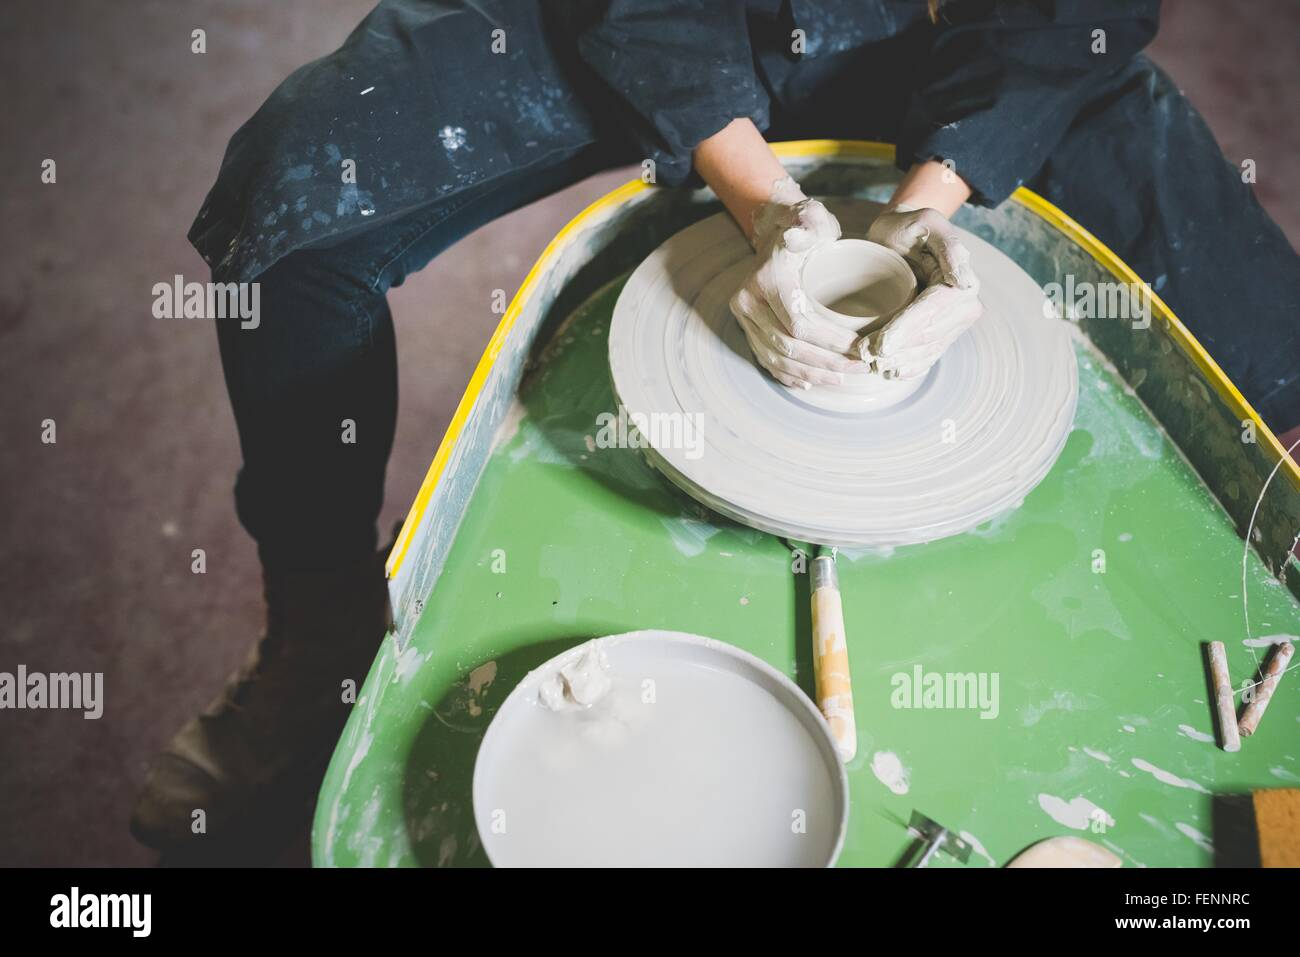 High angle view of young woman, waist down, sitting at pottery wheel making clay pot - Stock Image